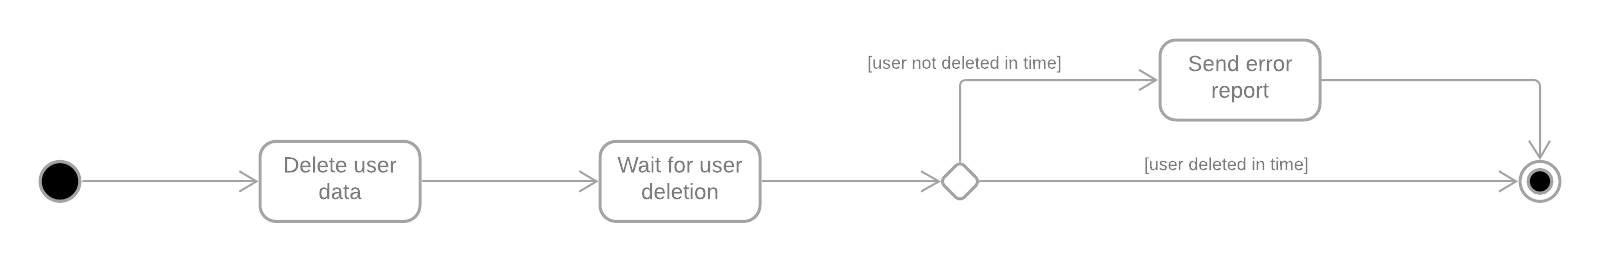 Subsystem workflow